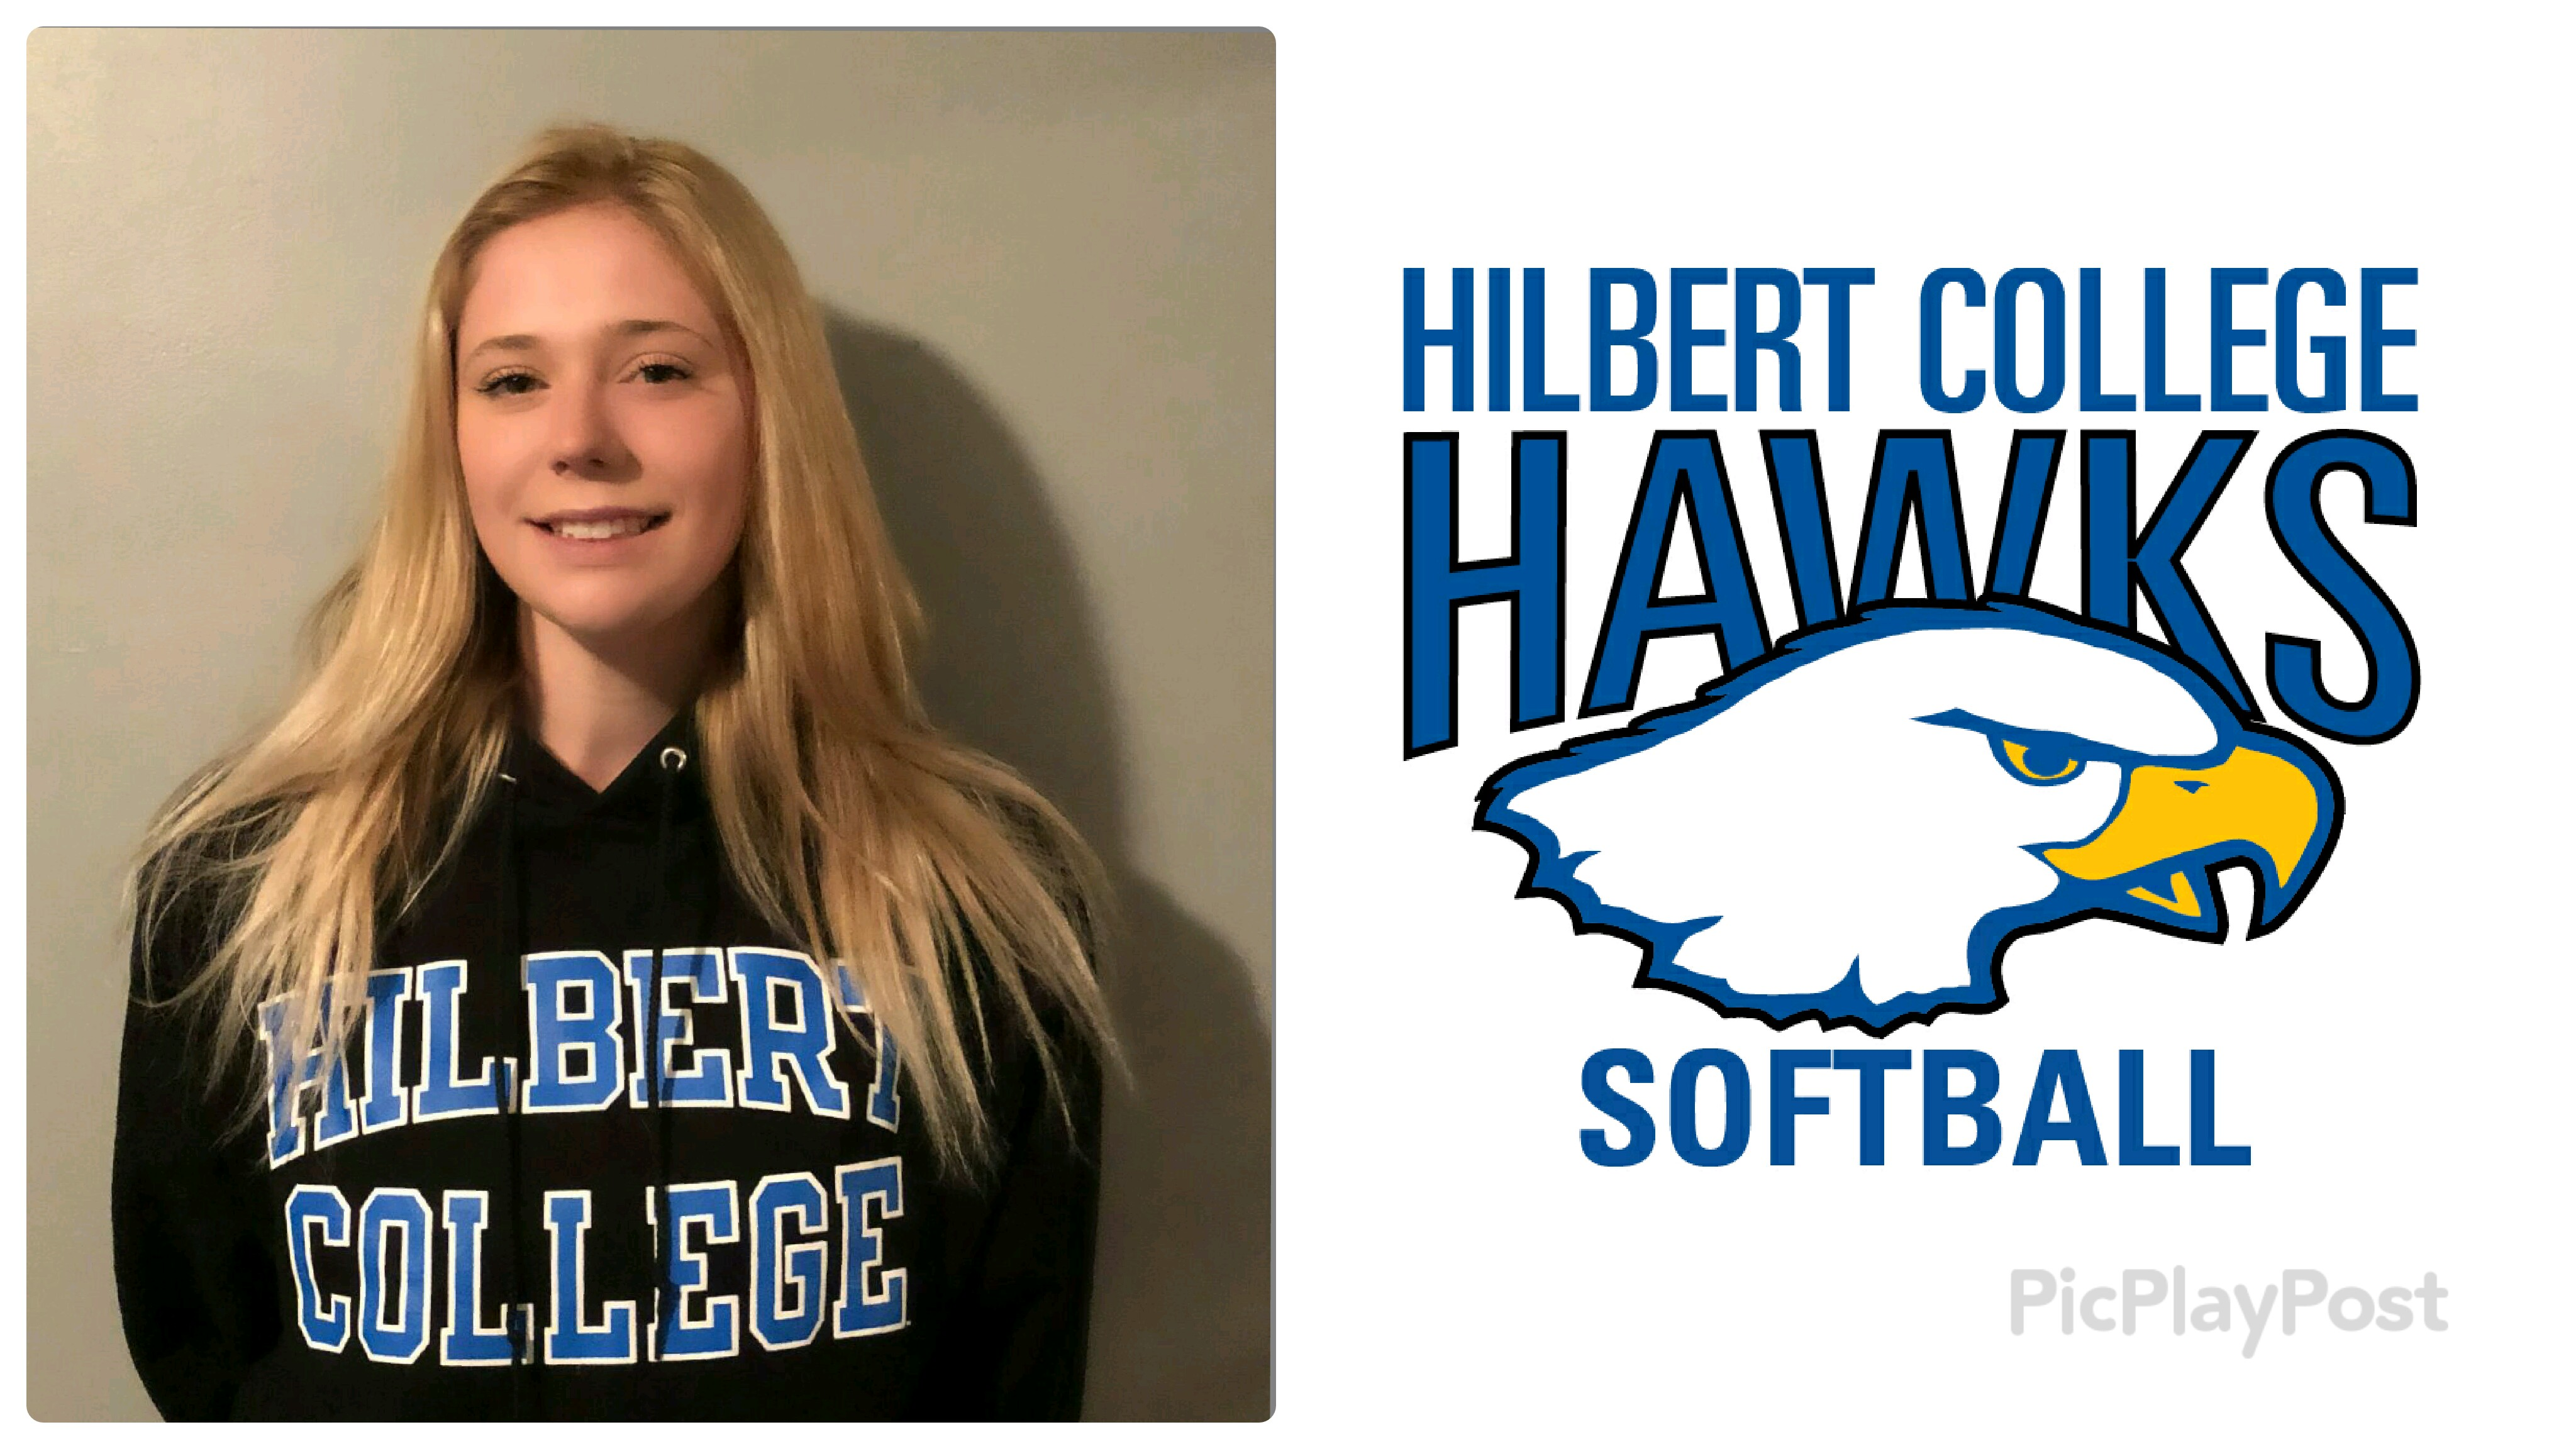 Congratulations to Bailey Budziszewski on her commitment to Hilbert College (Class of 2018)